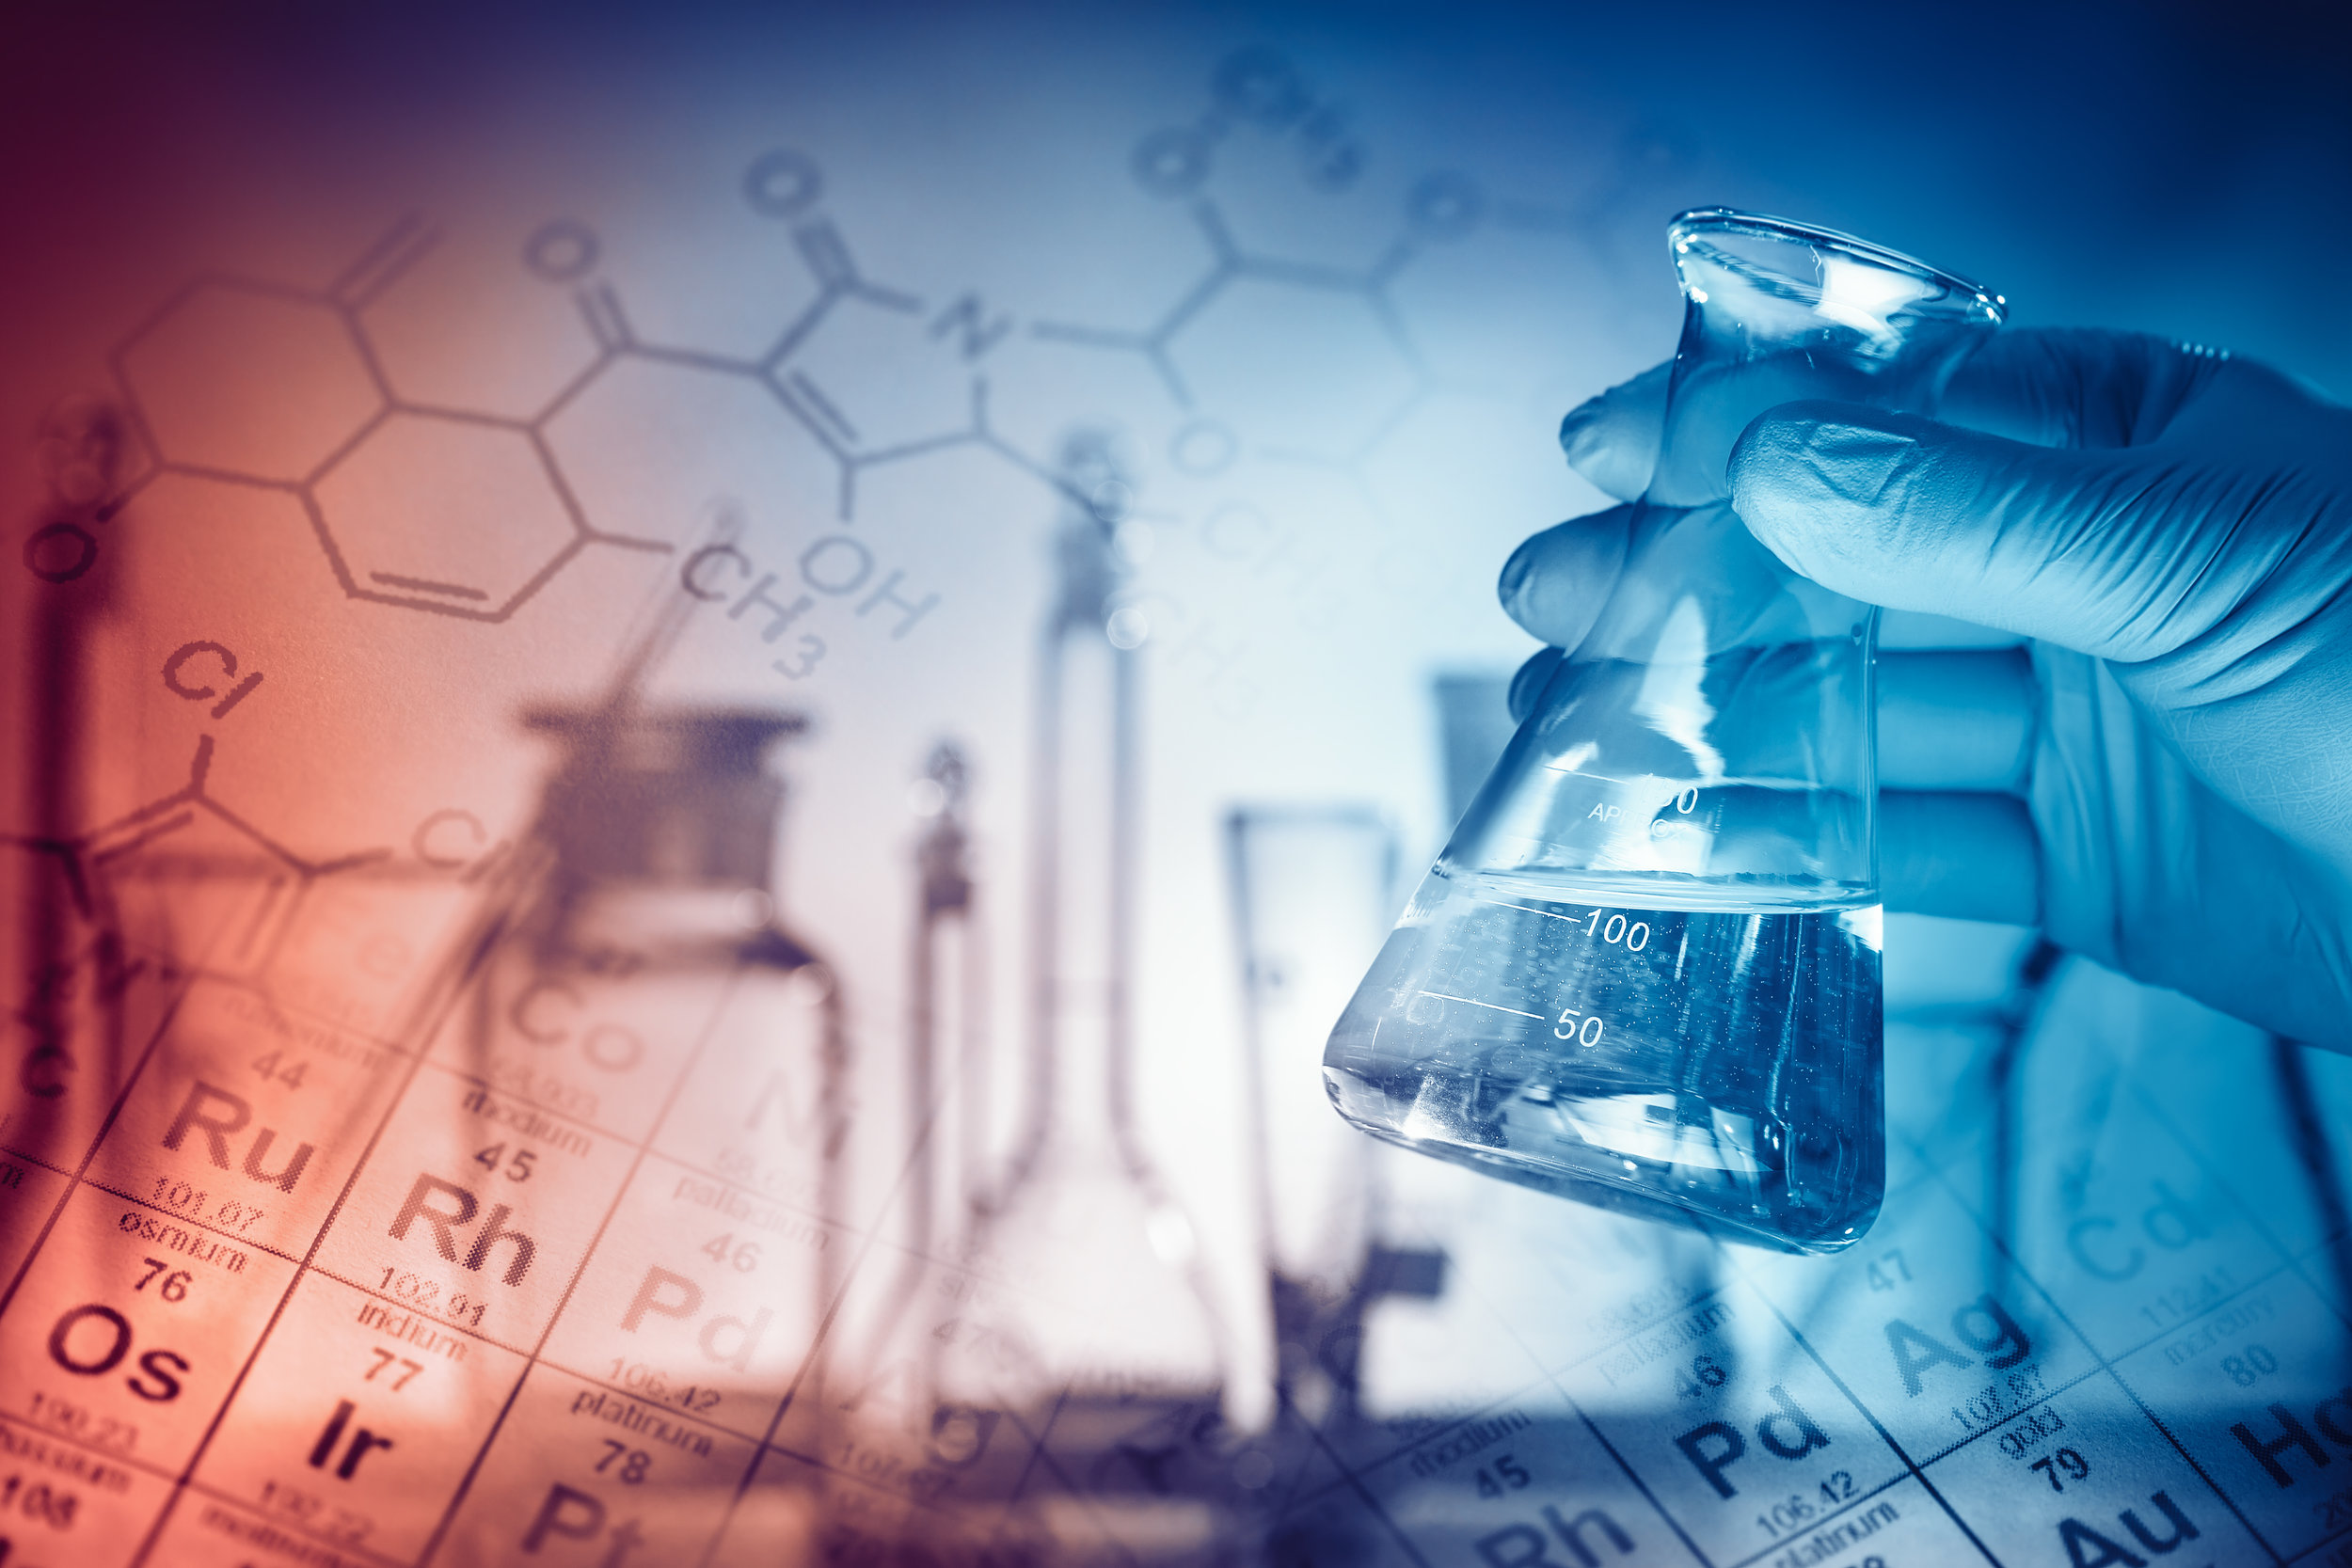 Our laboratory offers customized analytical testing services